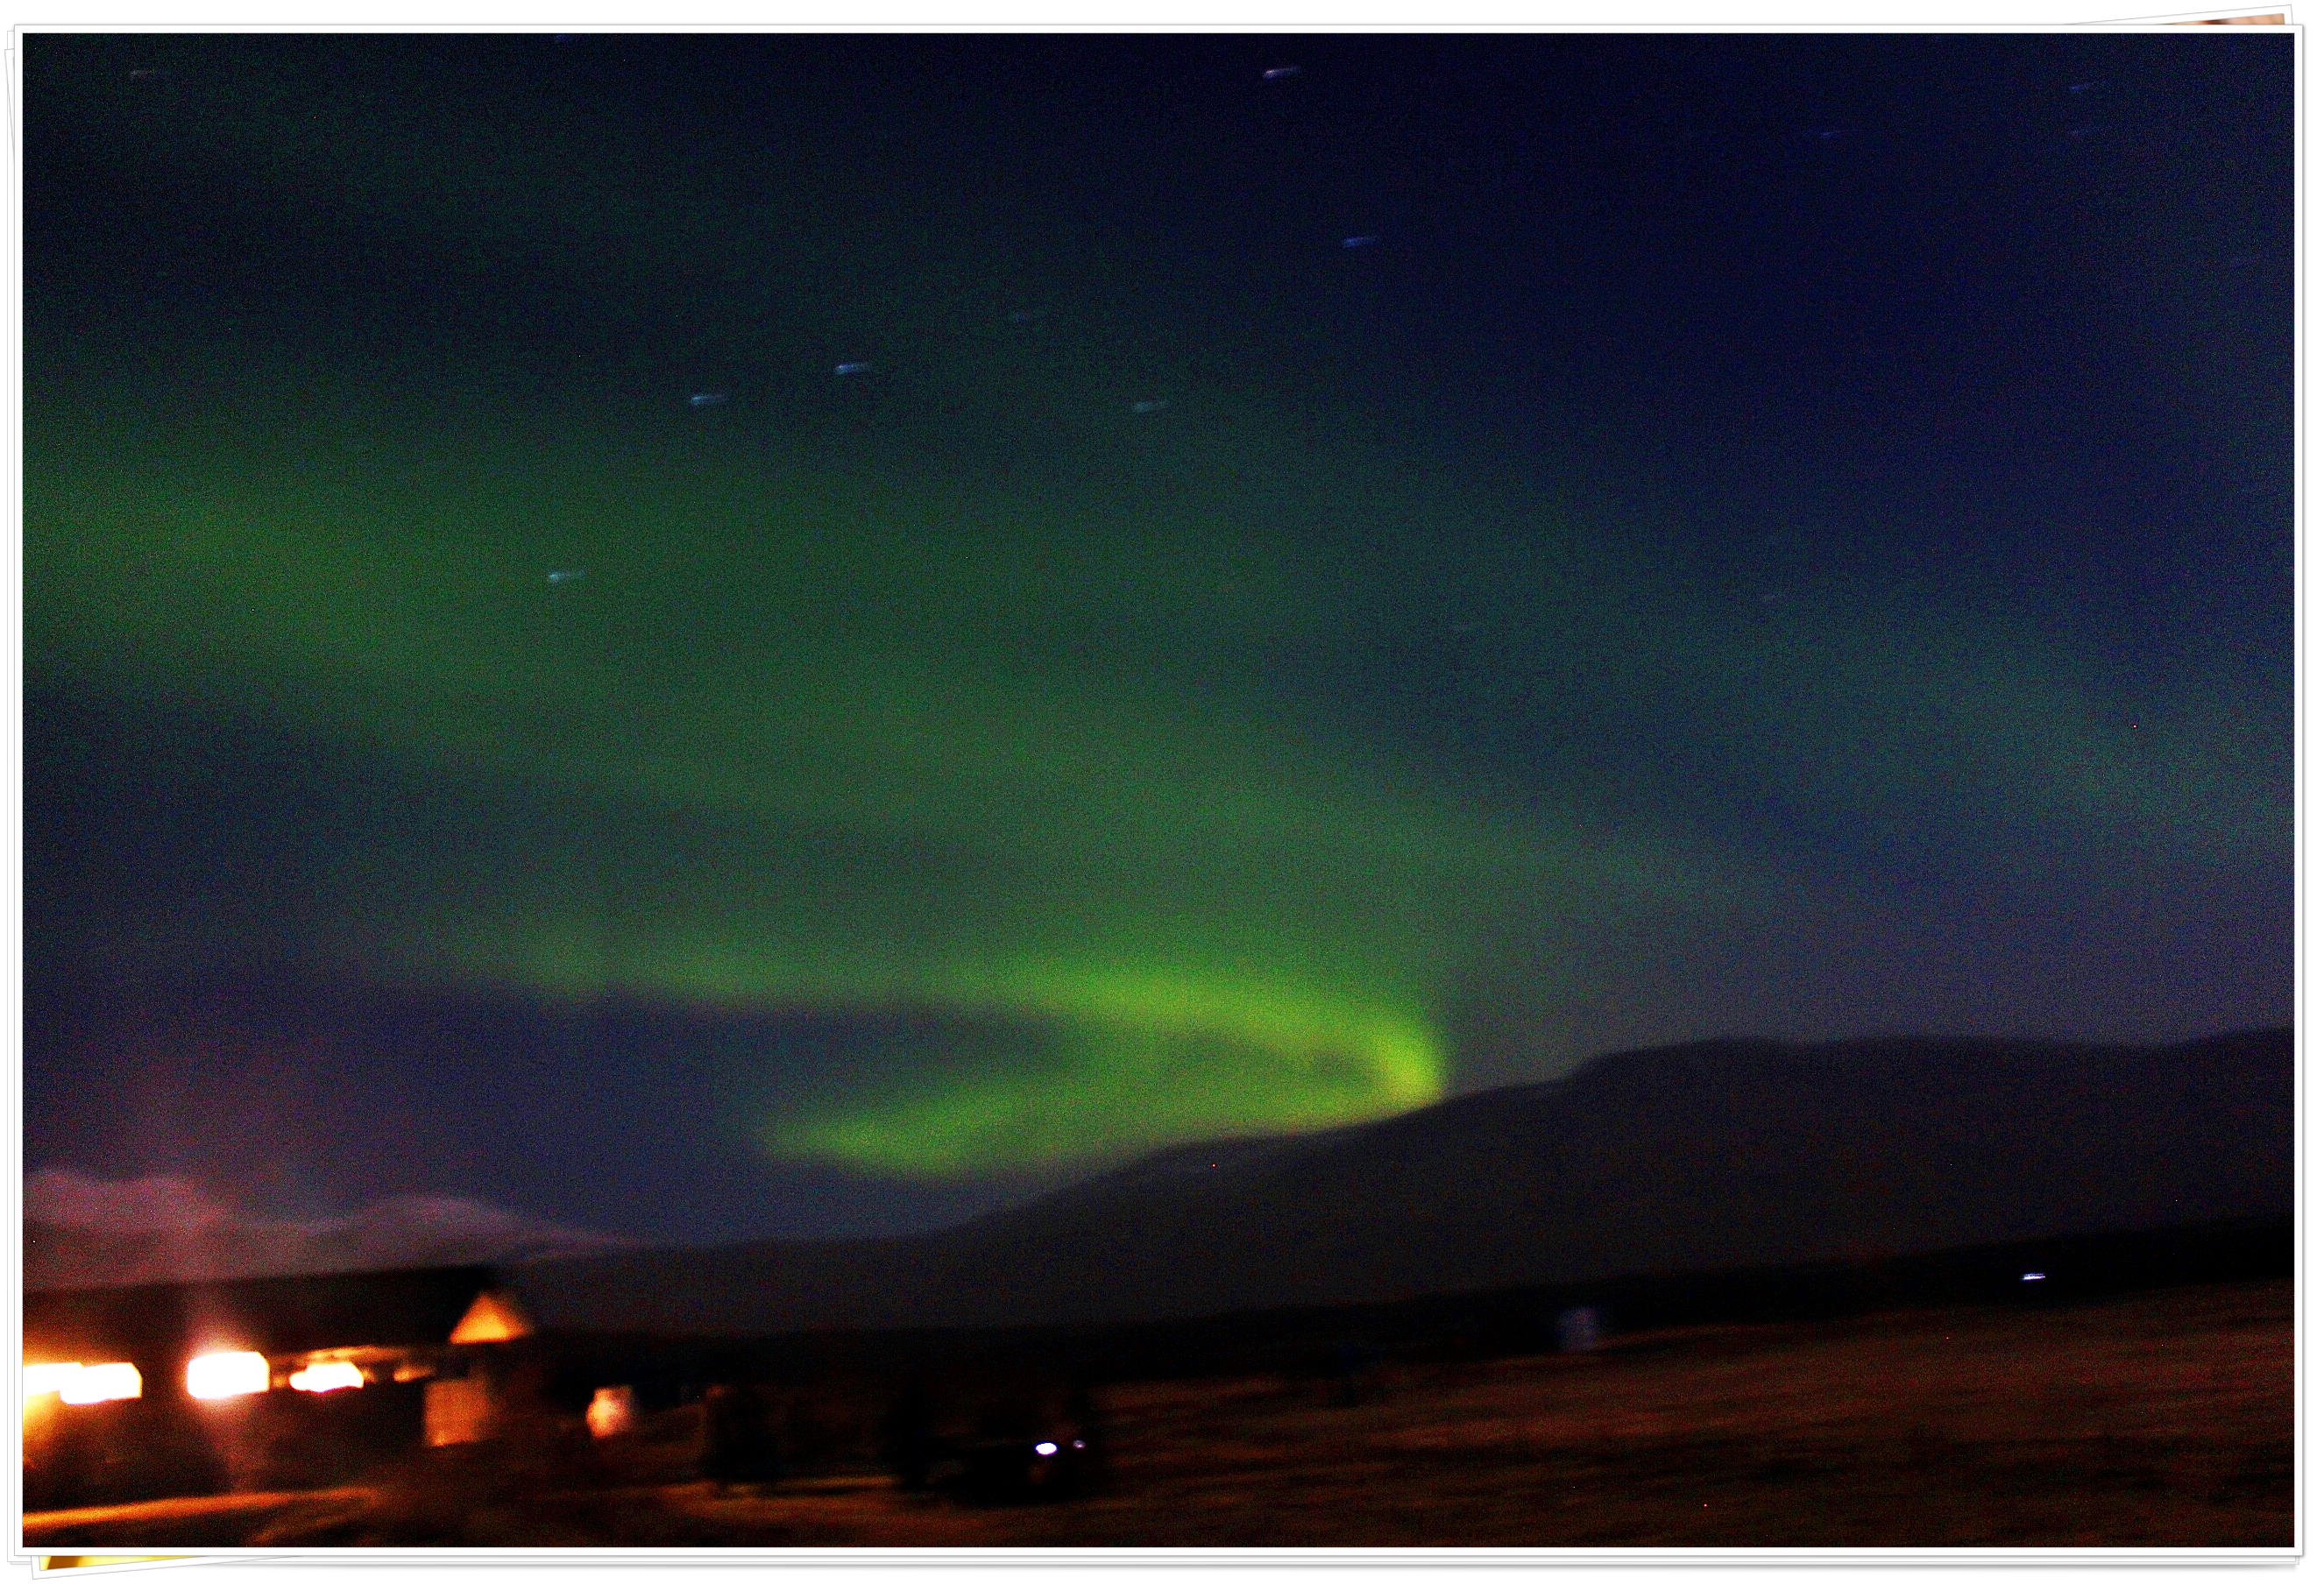 The Northern Lights, Reykjavik, Iceland - Nov 2014